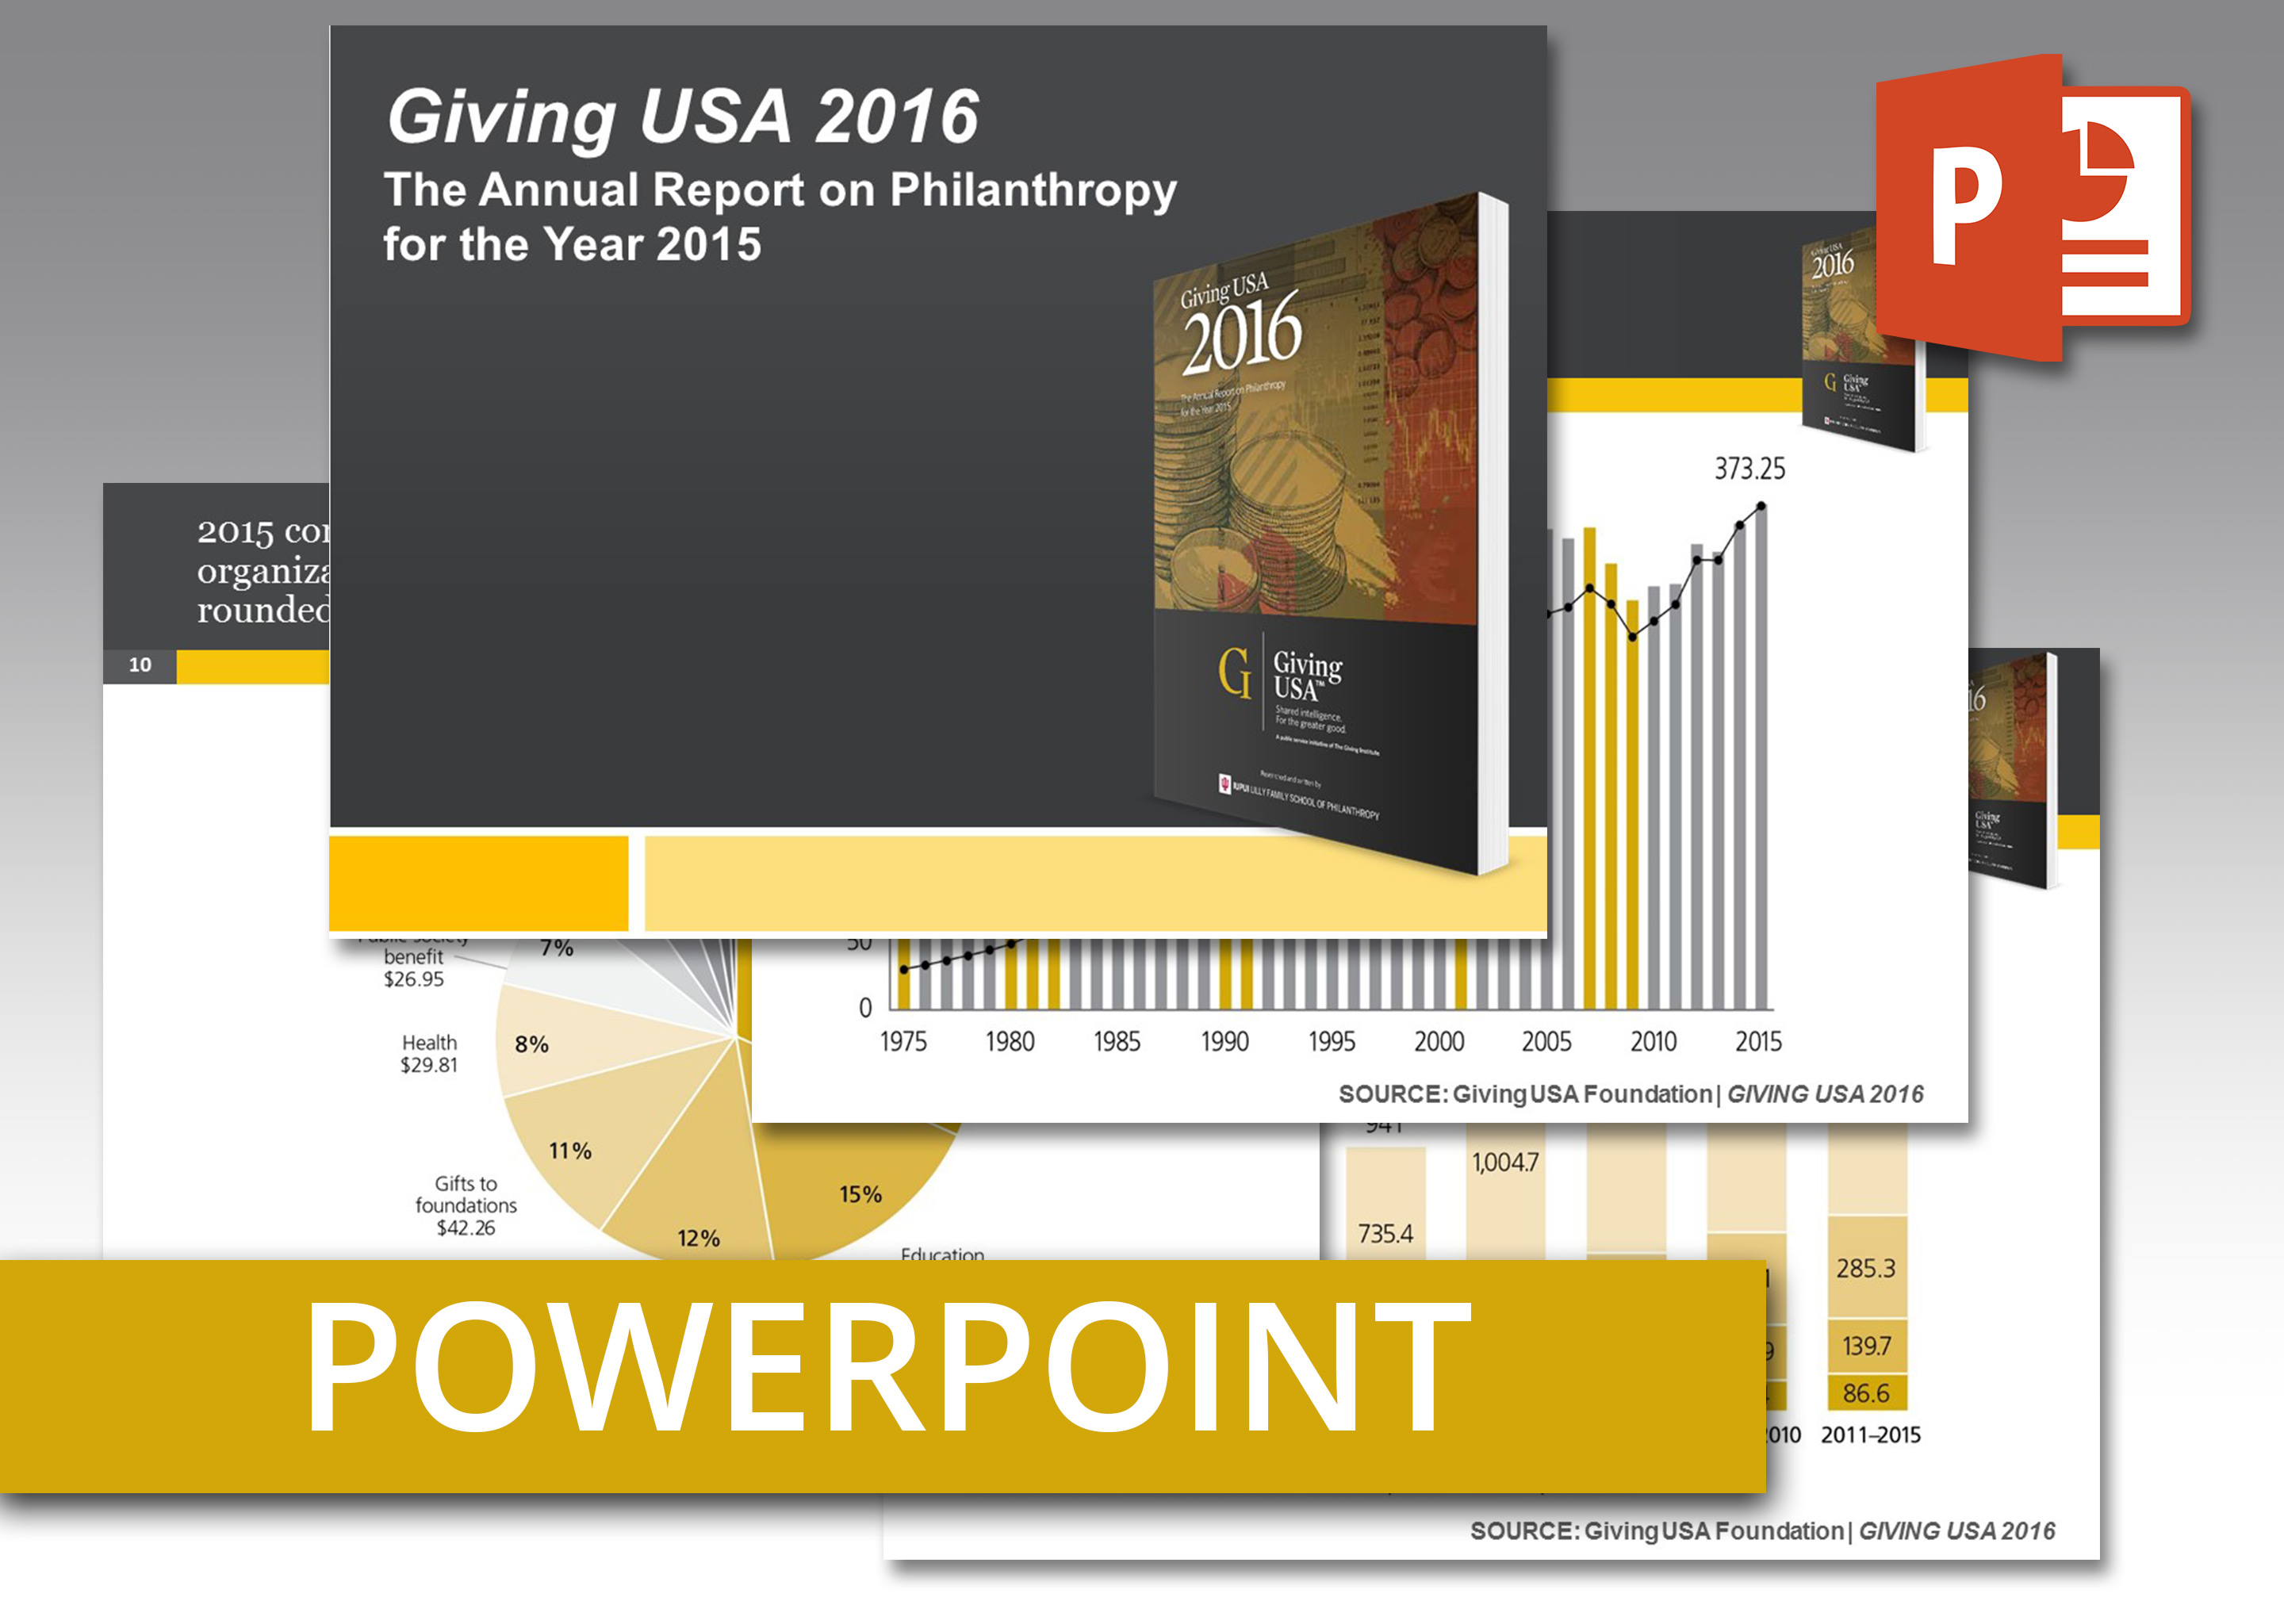 Coolmathgamesus  Gorgeous Giving Usa  Powerpoint An Easytouse Presentation Of Report  With Exquisite Giving Usa  Powerpoint An Easytouse Presentation Of Report Findings Including Talking Points With Astonishing Powerpoint Themes For Kids Also Exporting Pdf To Powerpoint In Addition Latest Powerpoint Templates Free Download And Template Powerpoint Presentation As Well As Persuasive Writing Powerpoint Middle School Additionally Powerpoint Web Browser From Givingusaorg With Coolmathgamesus  Exquisite Giving Usa  Powerpoint An Easytouse Presentation Of Report  With Astonishing Giving Usa  Powerpoint An Easytouse Presentation Of Report Findings Including Talking Points And Gorgeous Powerpoint Themes For Kids Also Exporting Pdf To Powerpoint In Addition Latest Powerpoint Templates Free Download From Givingusaorg